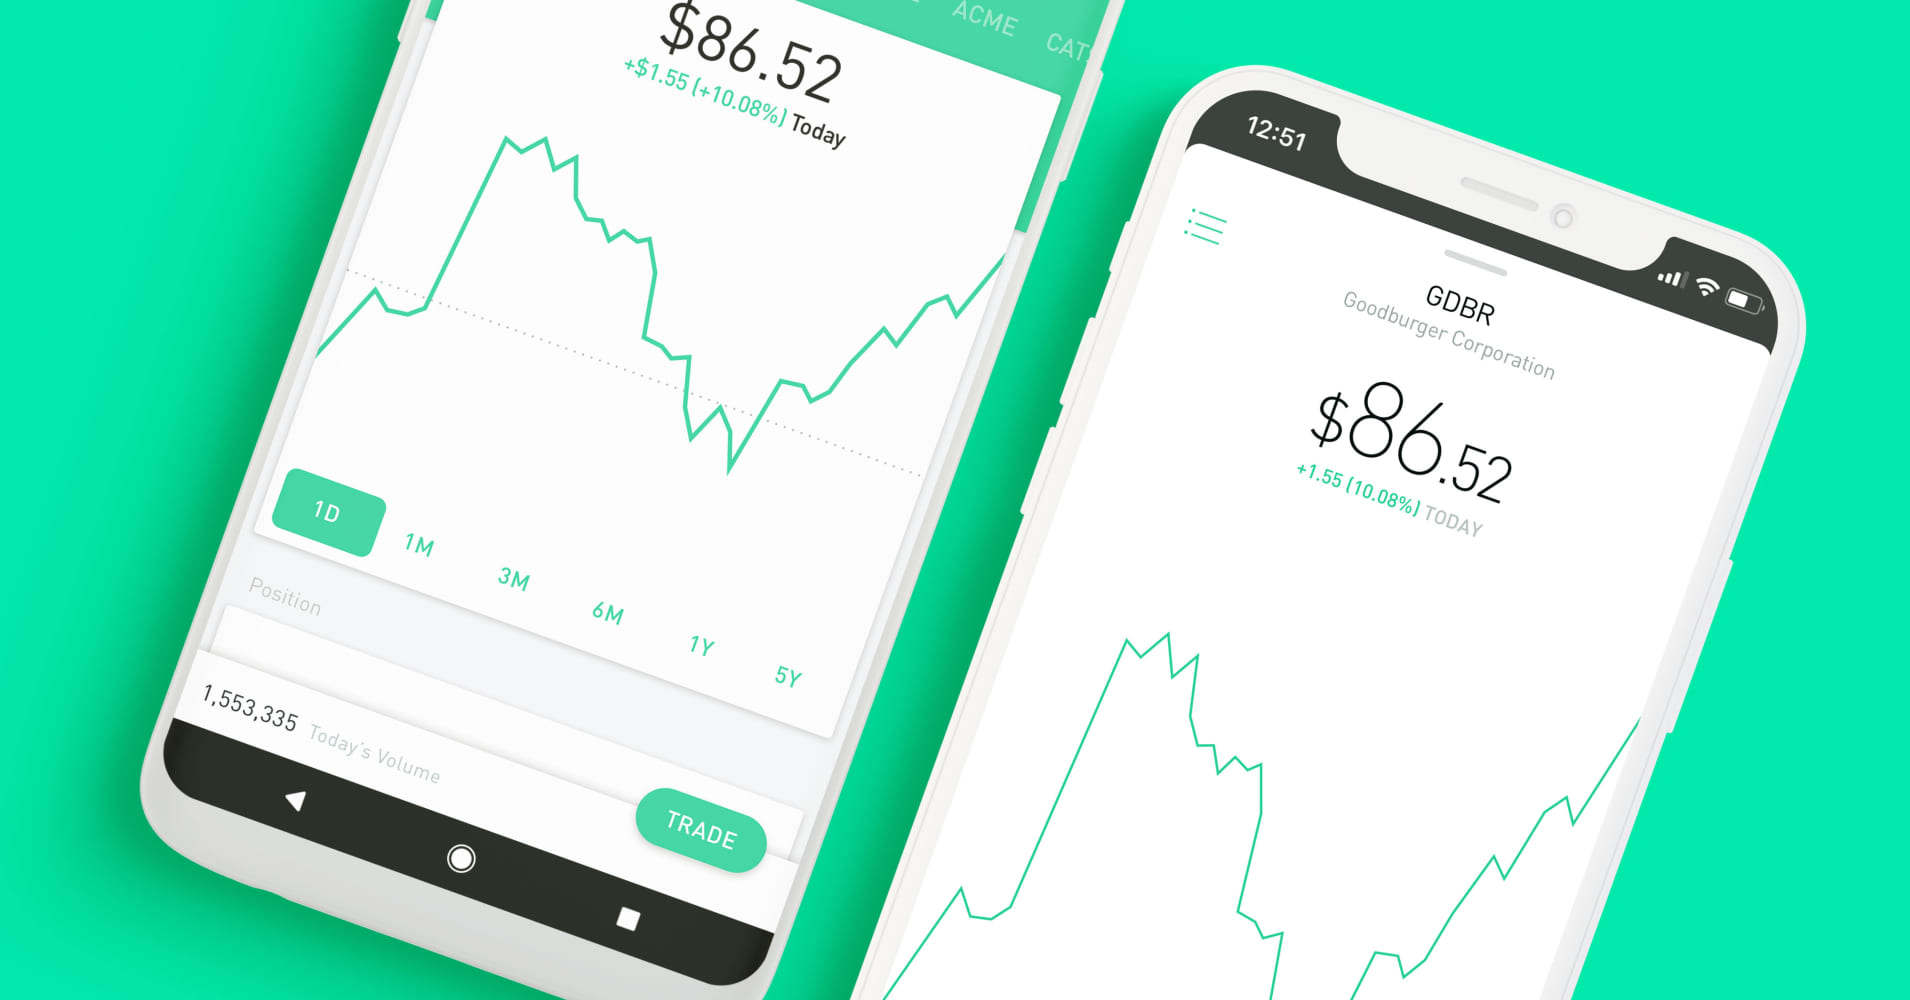 Robinhood's new checking account products raise regulatory questions